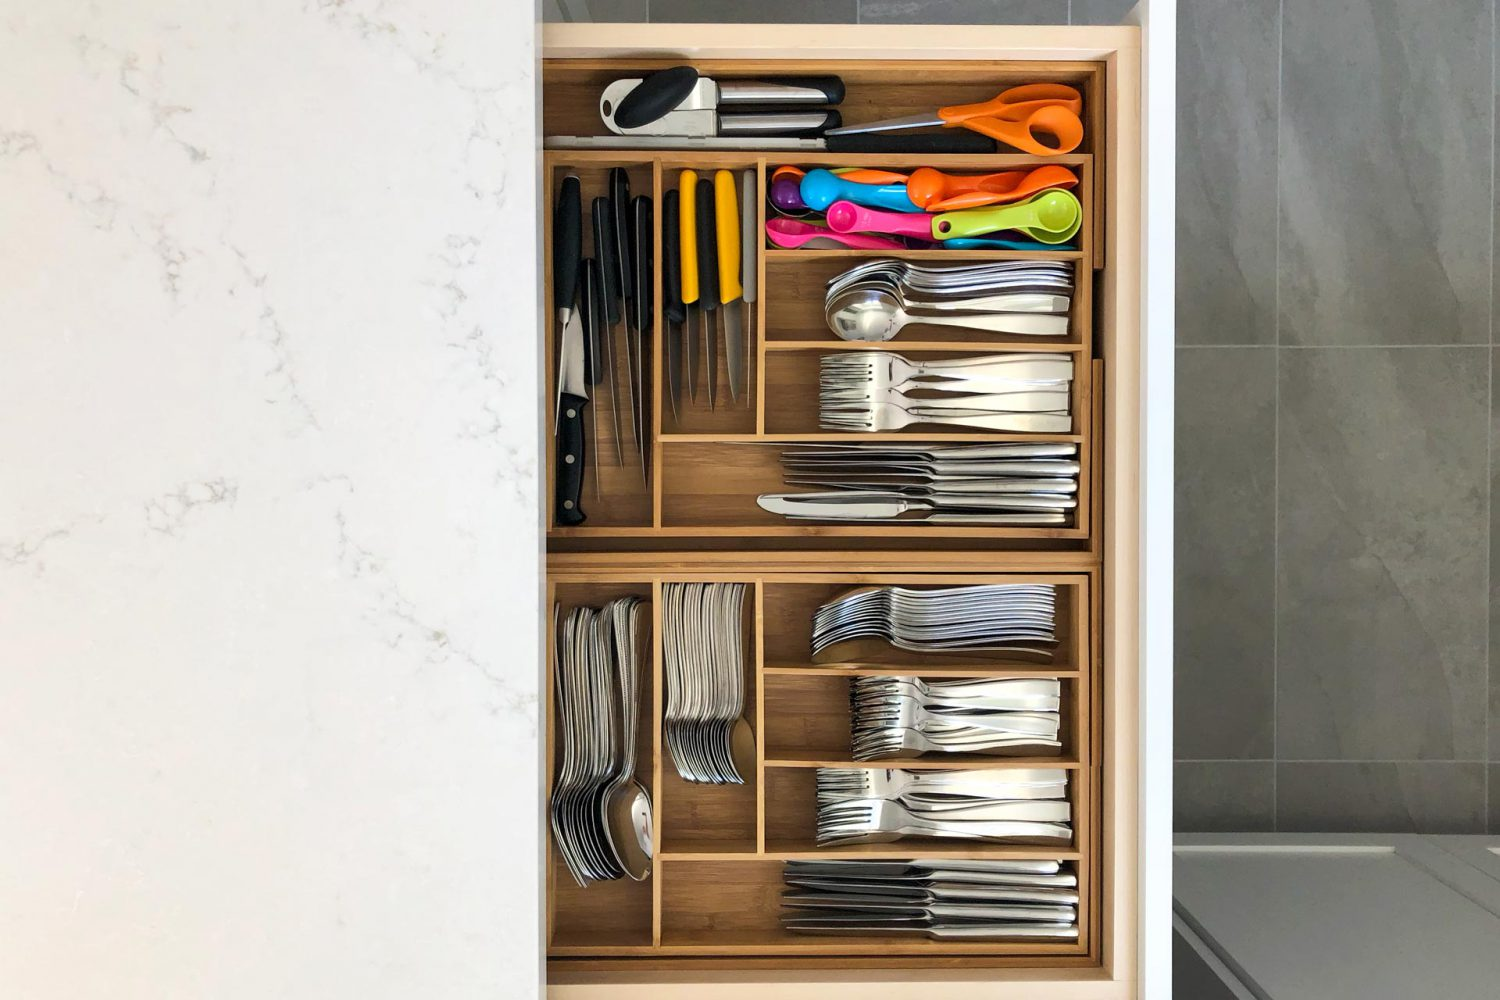 a kitchen drawer is pulled out showing its contents